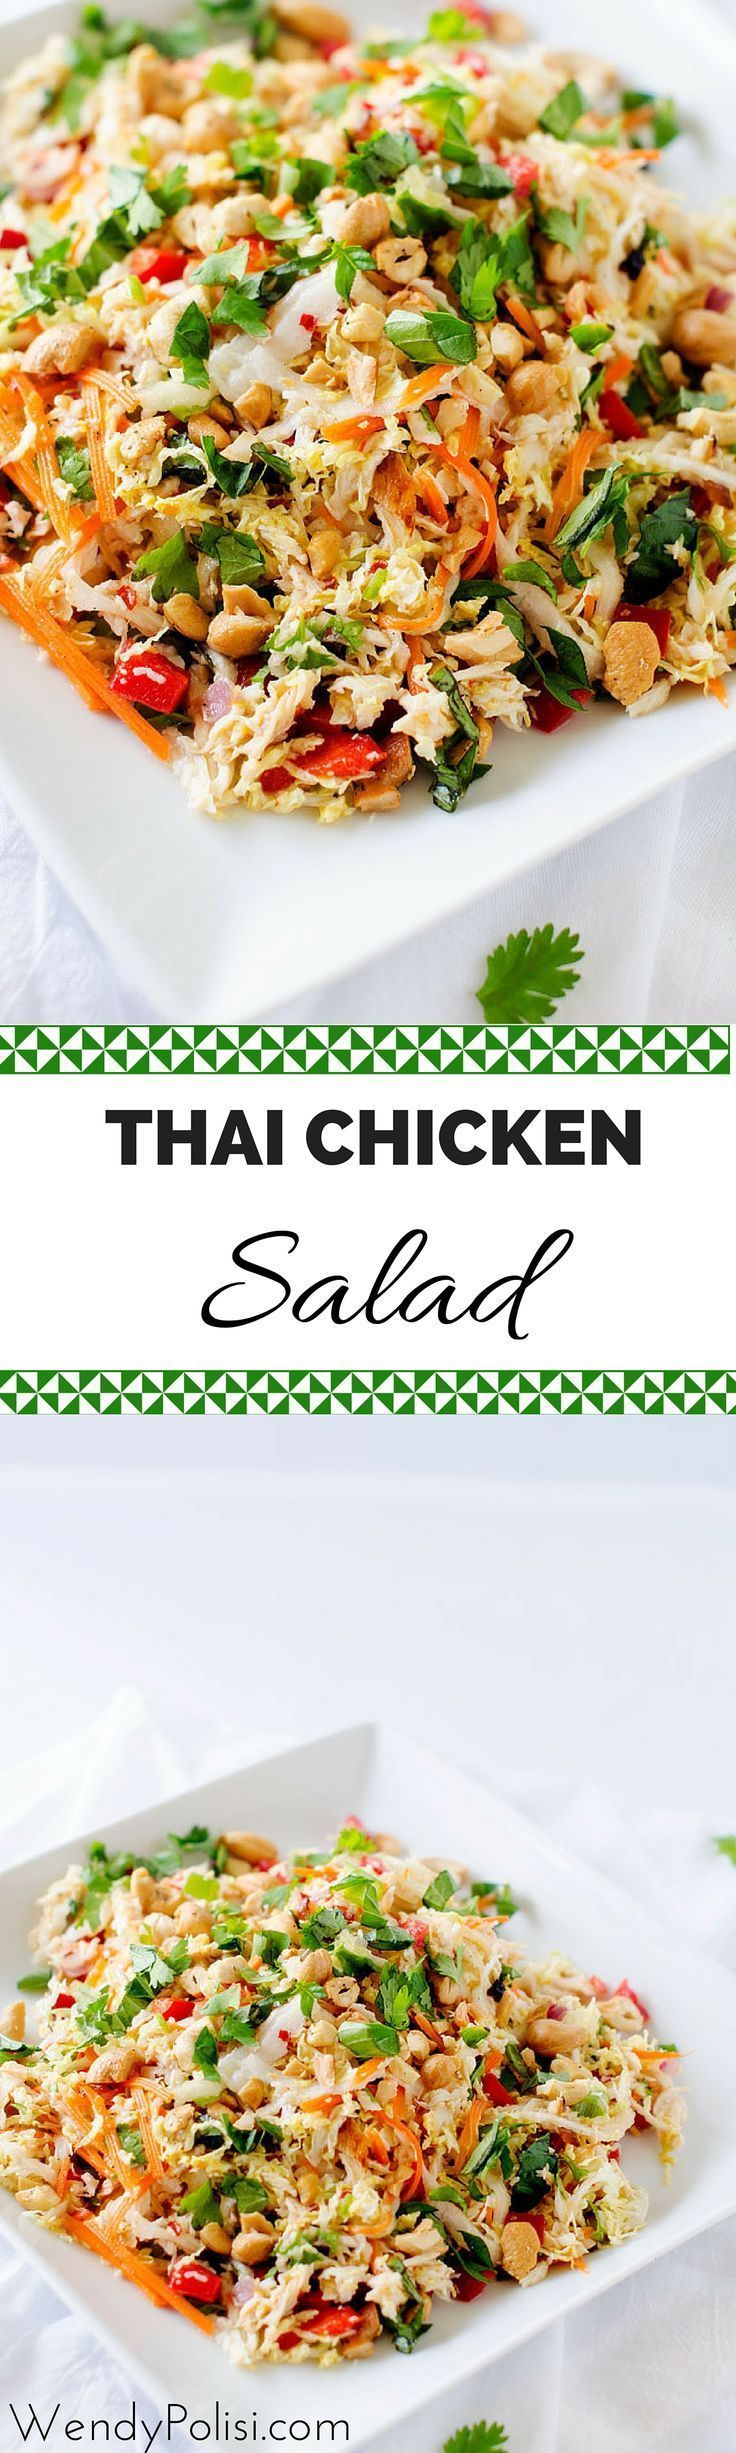 FOR FODMAP, OMIT GARLIC, USE MAPLE SYRUP INSTEAD OF HONEY; USE PEANUTS; USE REGULAR GREEN CABBAGE. Thai Chicken Salad - WendyPolisi.com